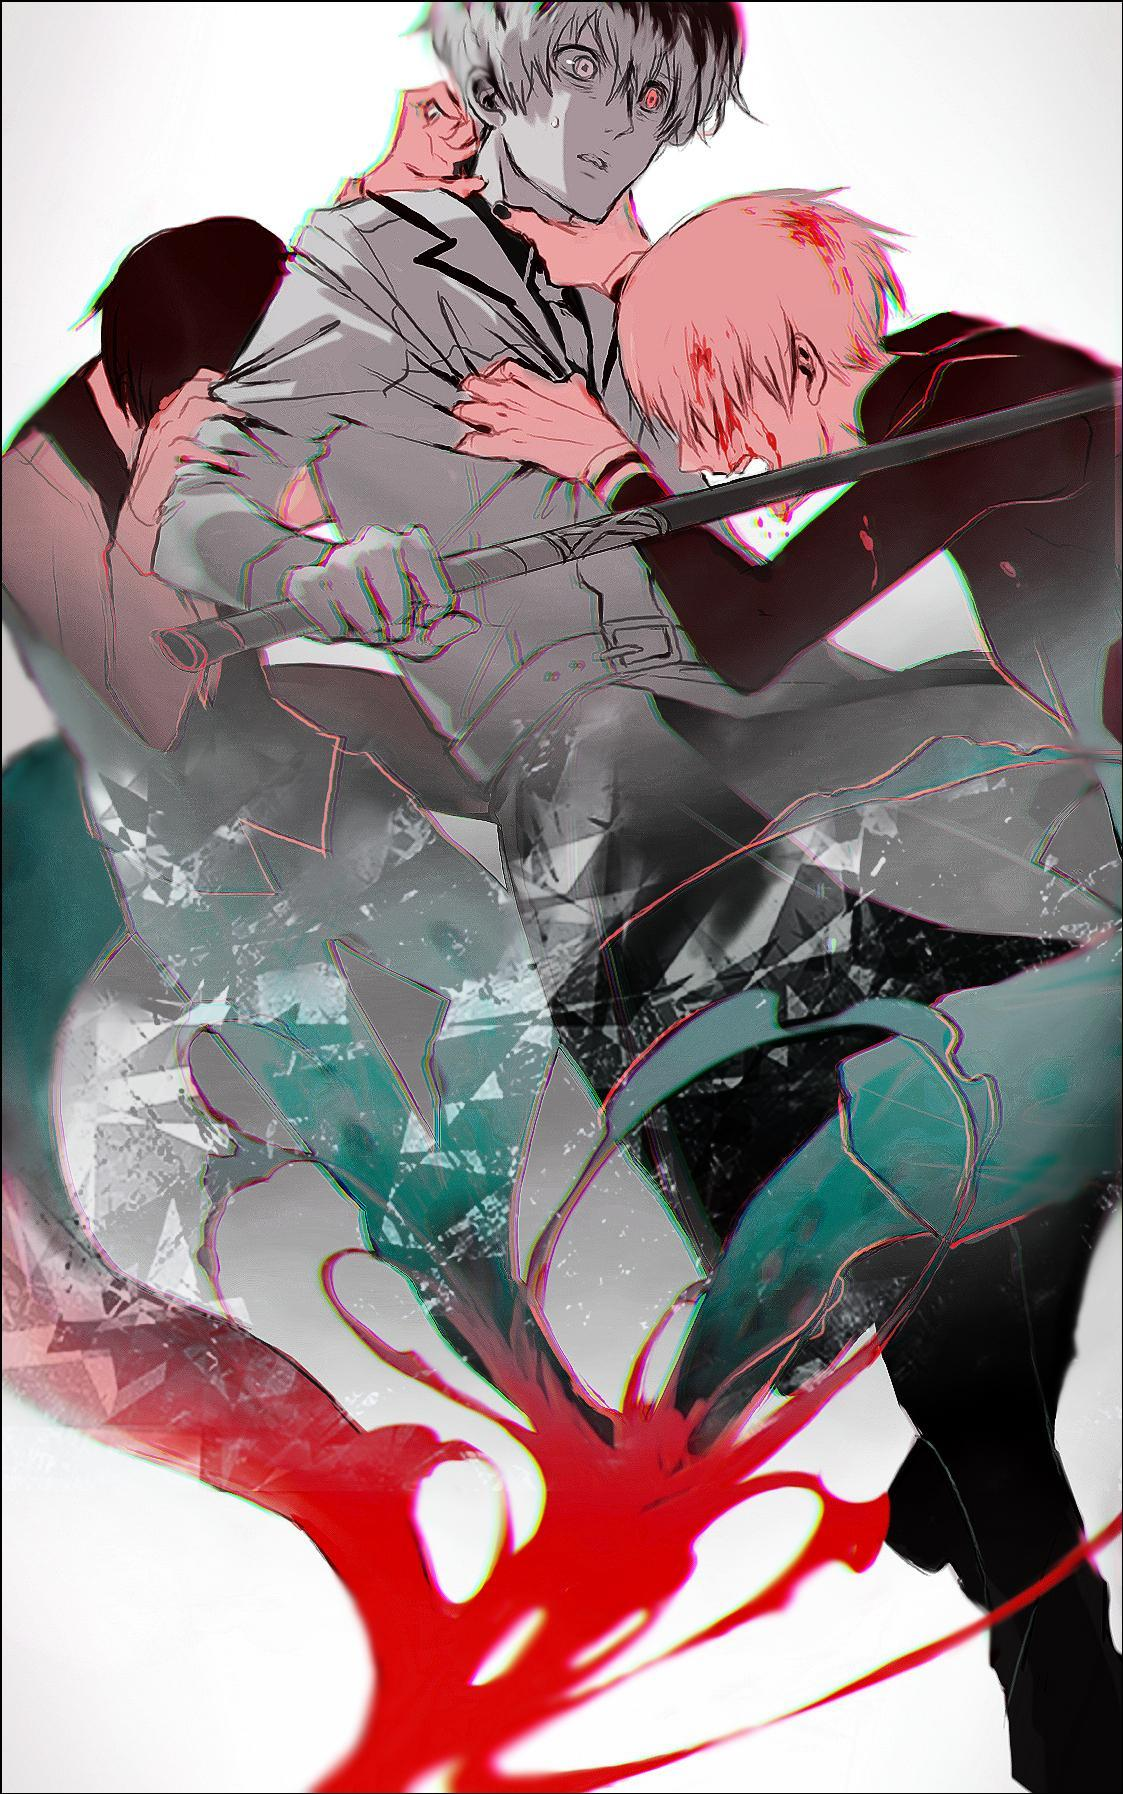 So which wallpaper apps do you like? Tokyo Ghoul Android Phone Wallpapers - Wallpaper Cave